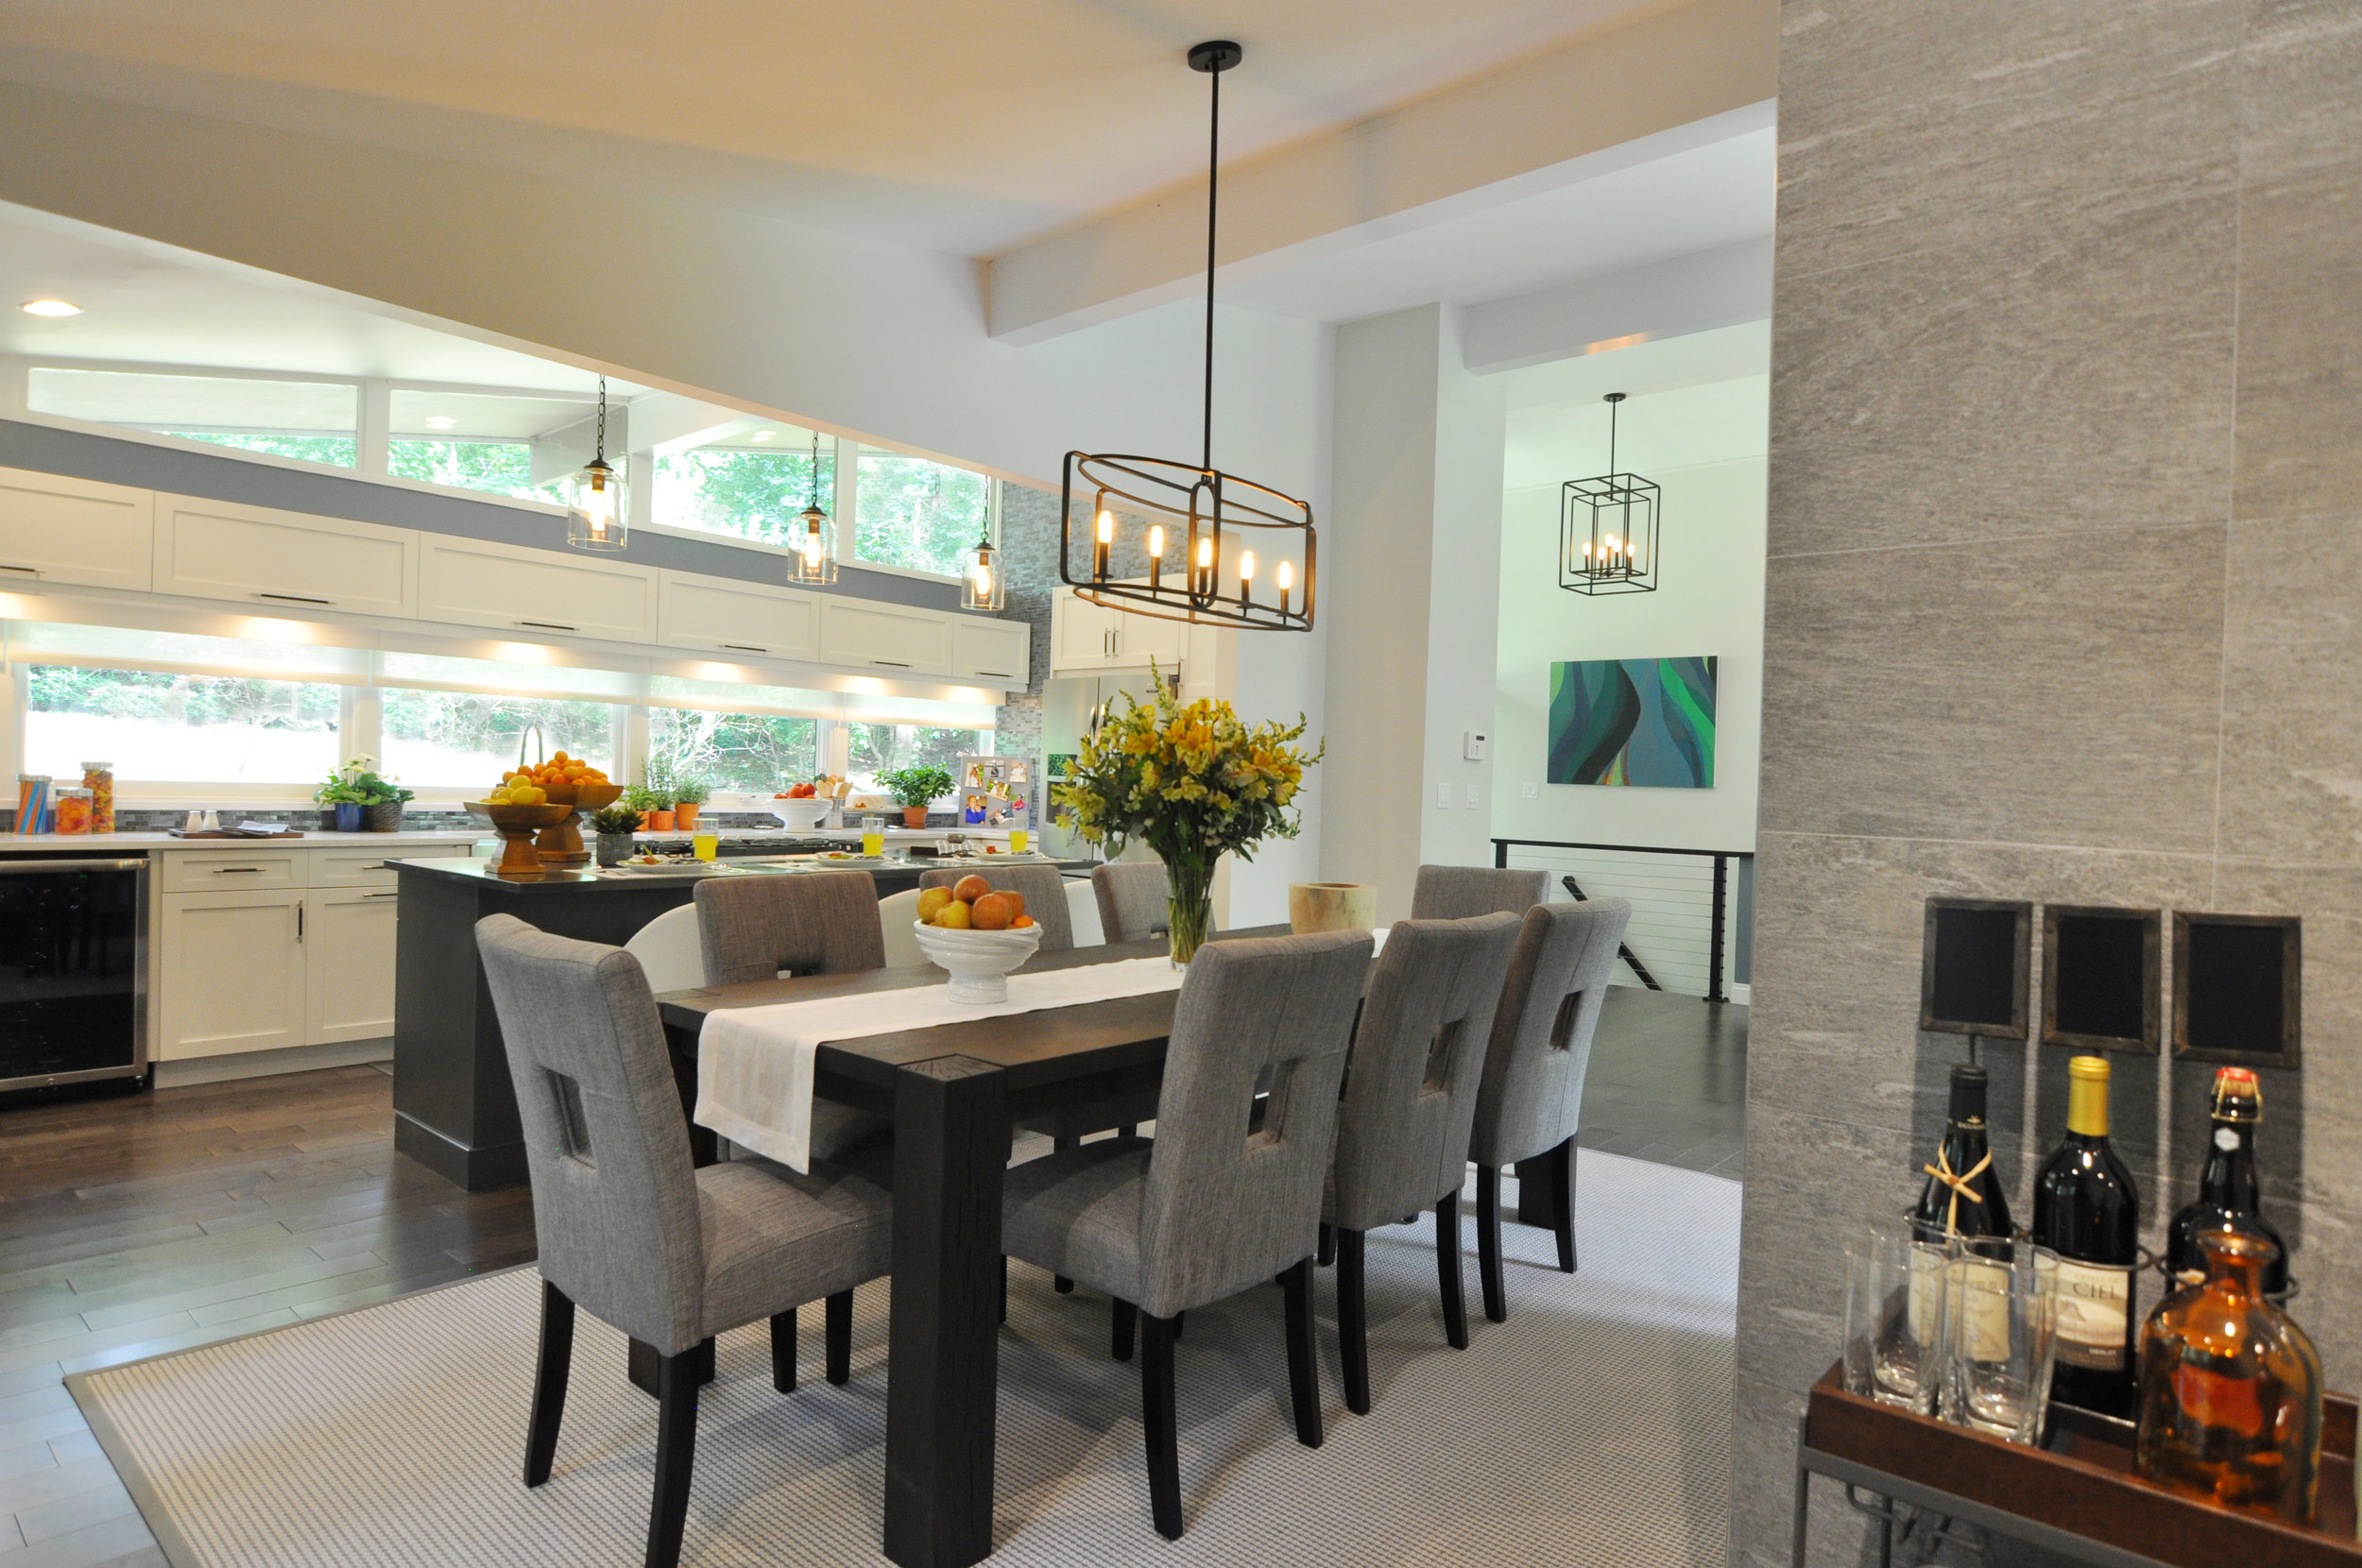 Kim A Mitchell_Design Lead_The Property Brothers_Season 6_Episode 9_Modern Dining Room_Crate and Barrel Dining Table_Open to White Kitchen_Scandecor Rug_Blue Gray Dining Room_2017.jpg